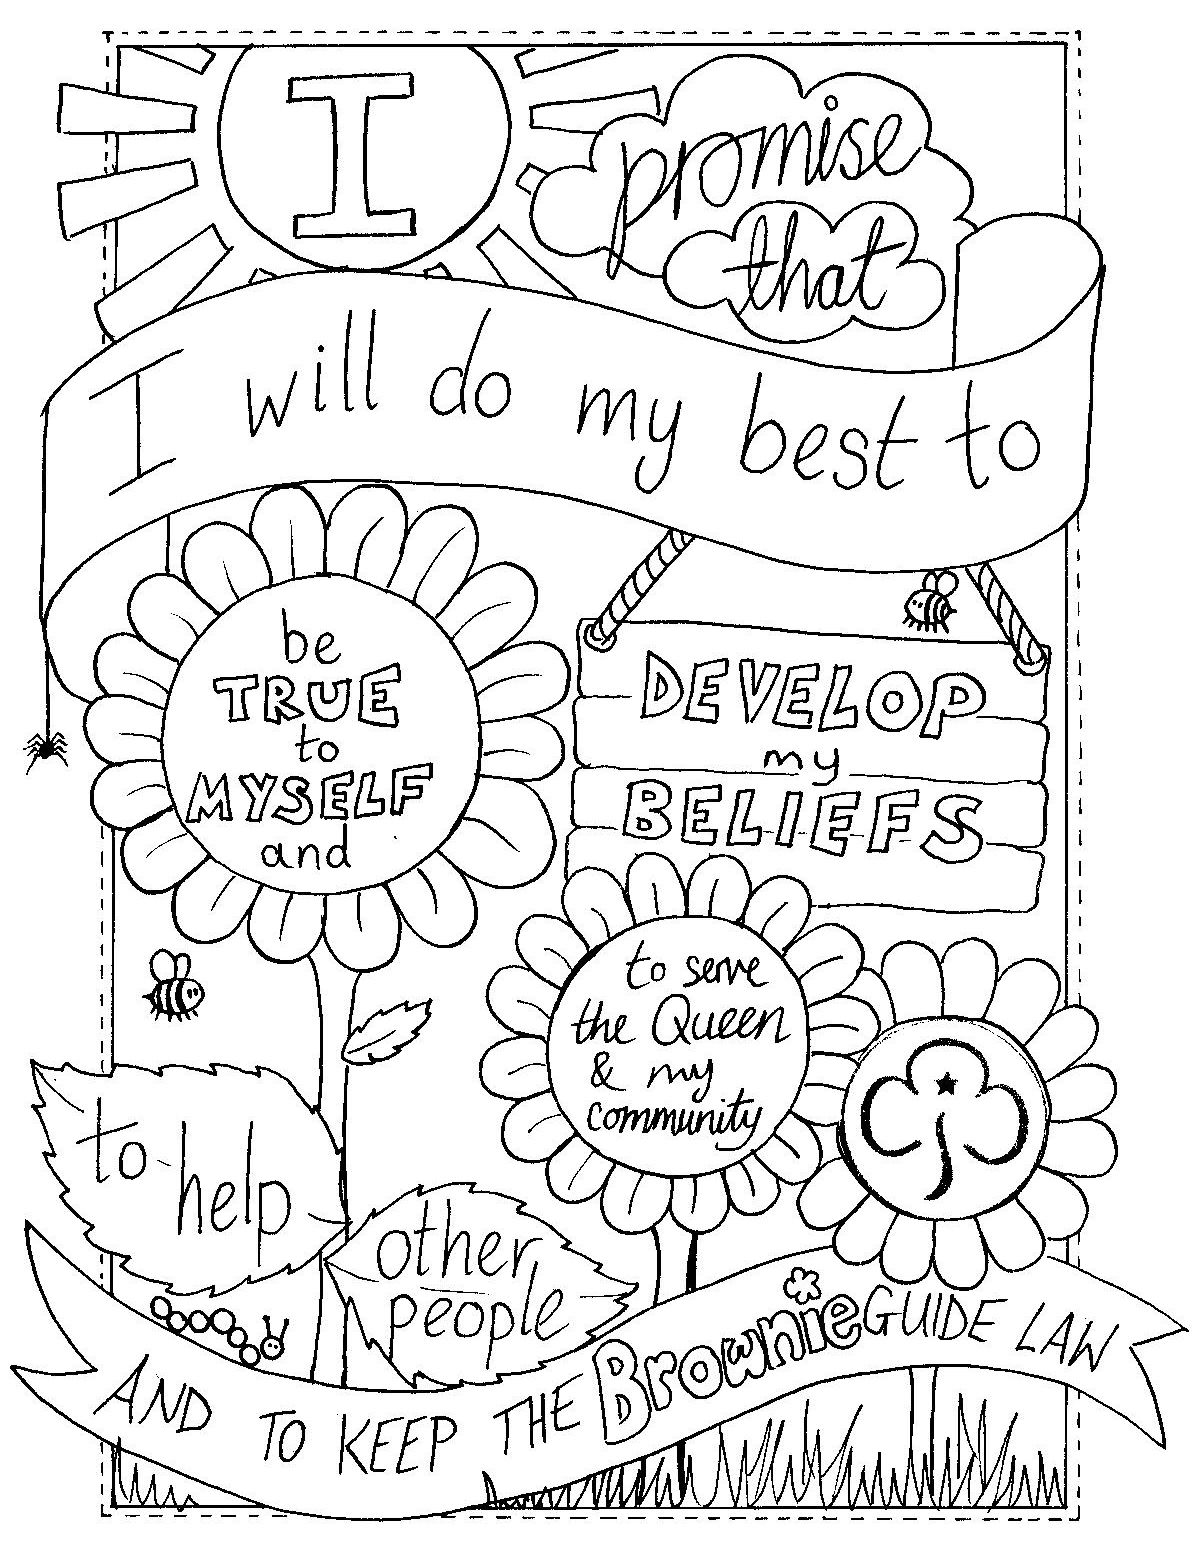 girl scout coloring pages printable girl scout cookie drawing at getdrawings free download pages coloring girl scout printable